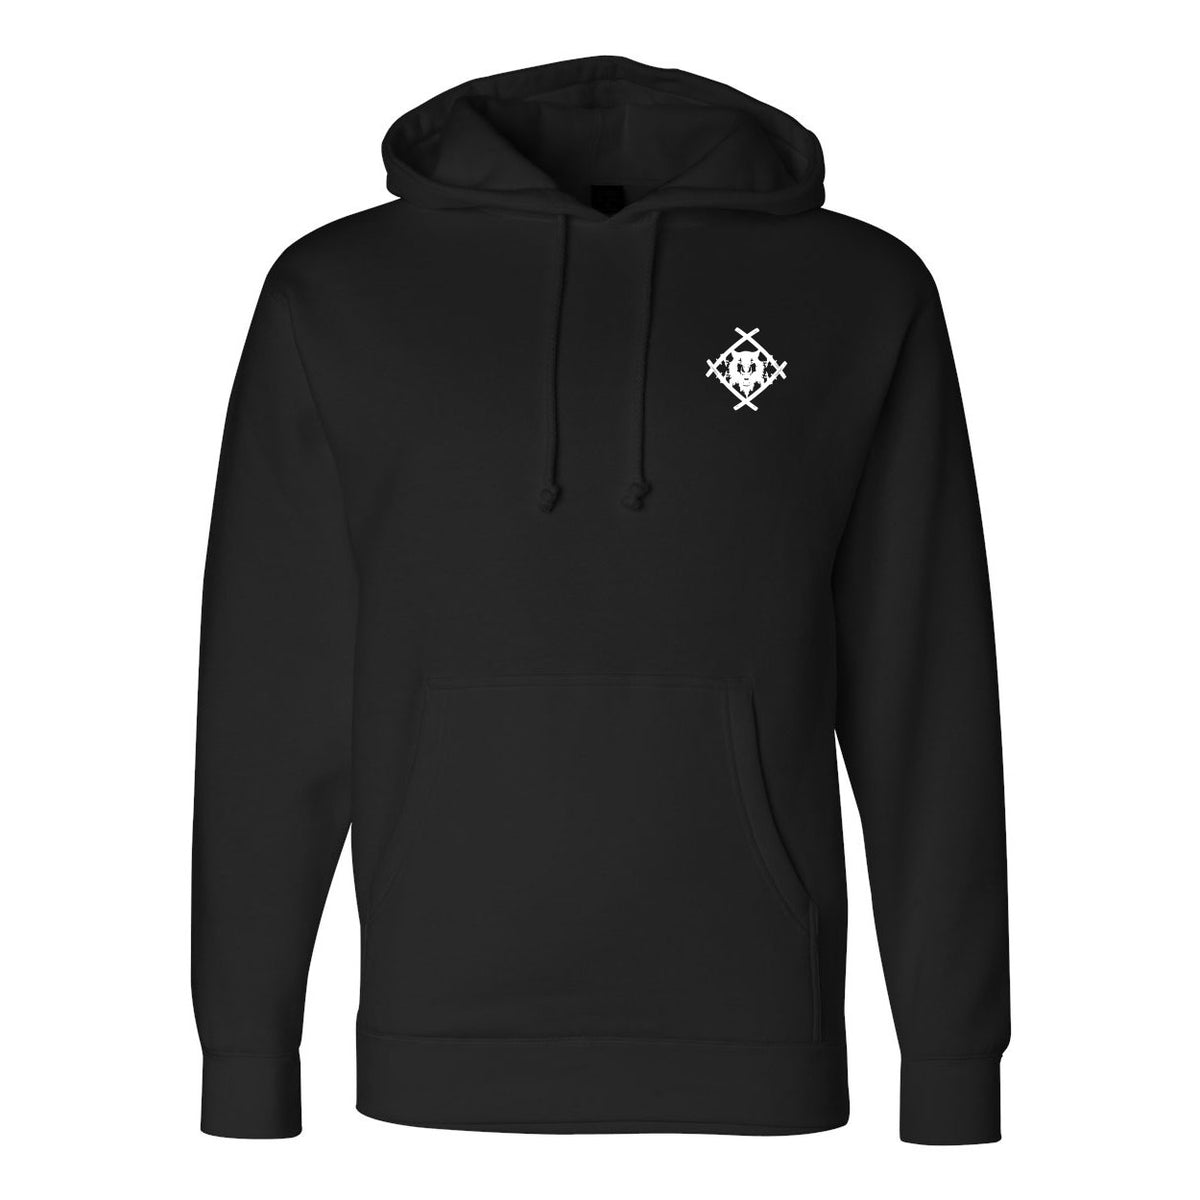 Official Hollowsquad Heavyweight Hoodie